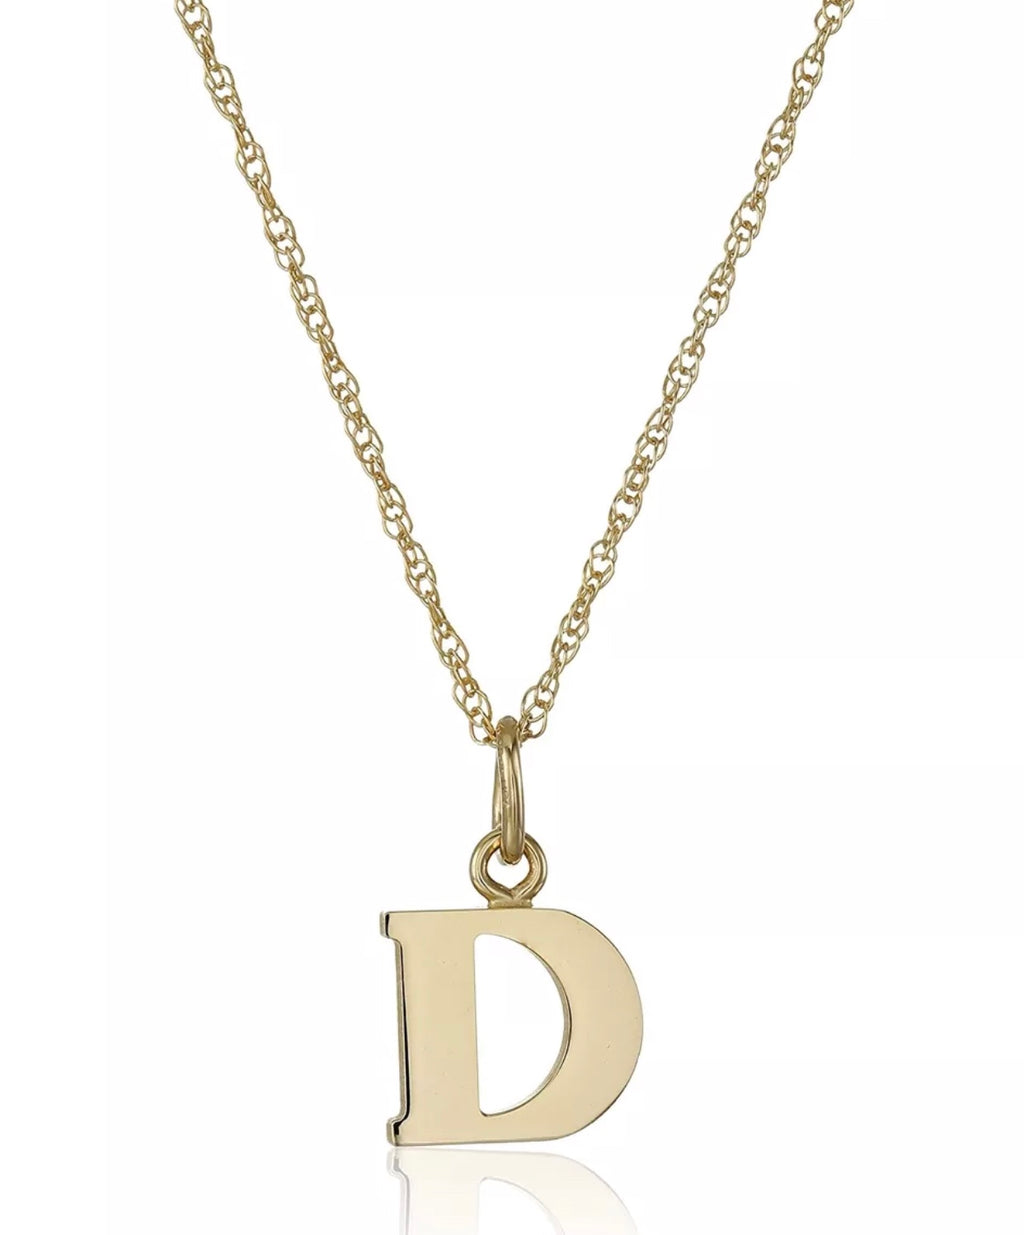 Solid 14K Gold Initial Pendant Necklace